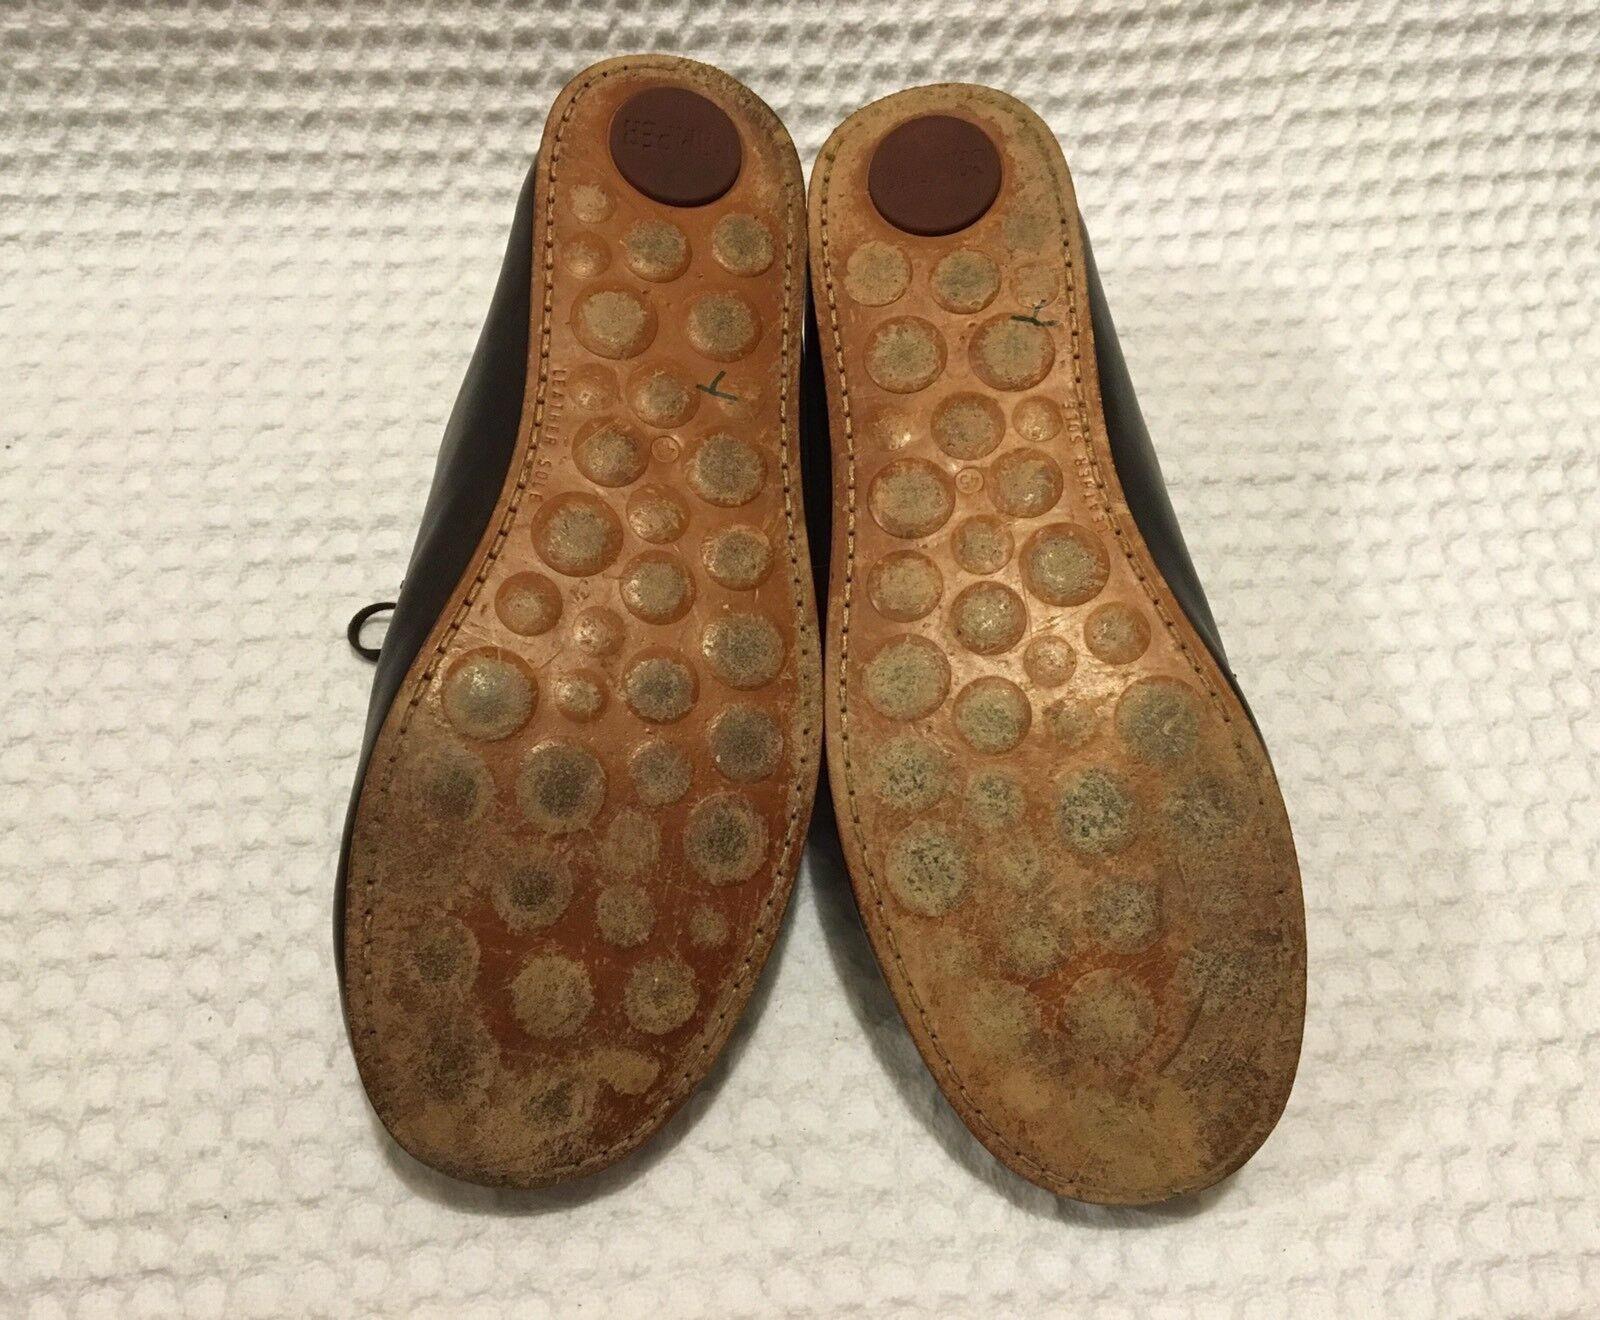 CAMPER 250 Gr Lace-up Leather Oxfords Bowling Bowling Bowling Casual shoes  290 Brown 45   12 734b39